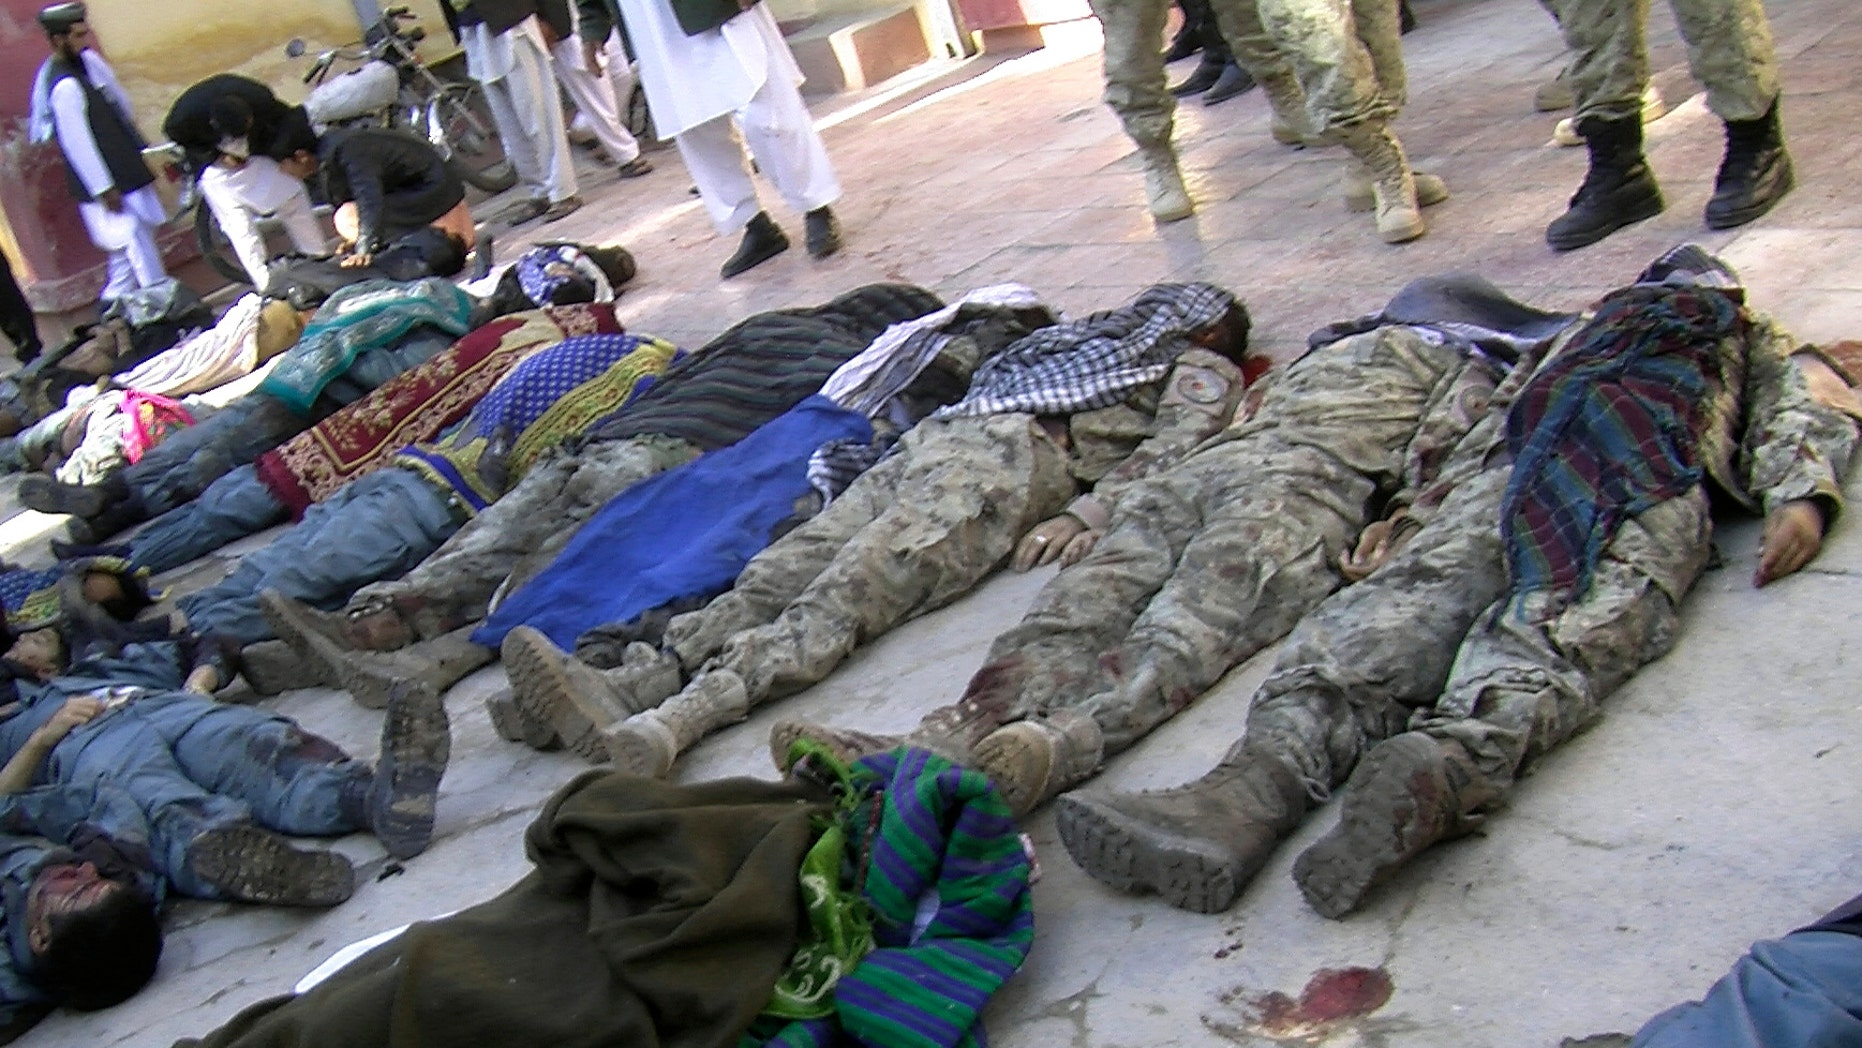 Oct. 26, 2012 - Bodies of victims of a suicide attack lie in a courtyard of a hospital in Maymana, northwest of Kabul, Afghanistan.